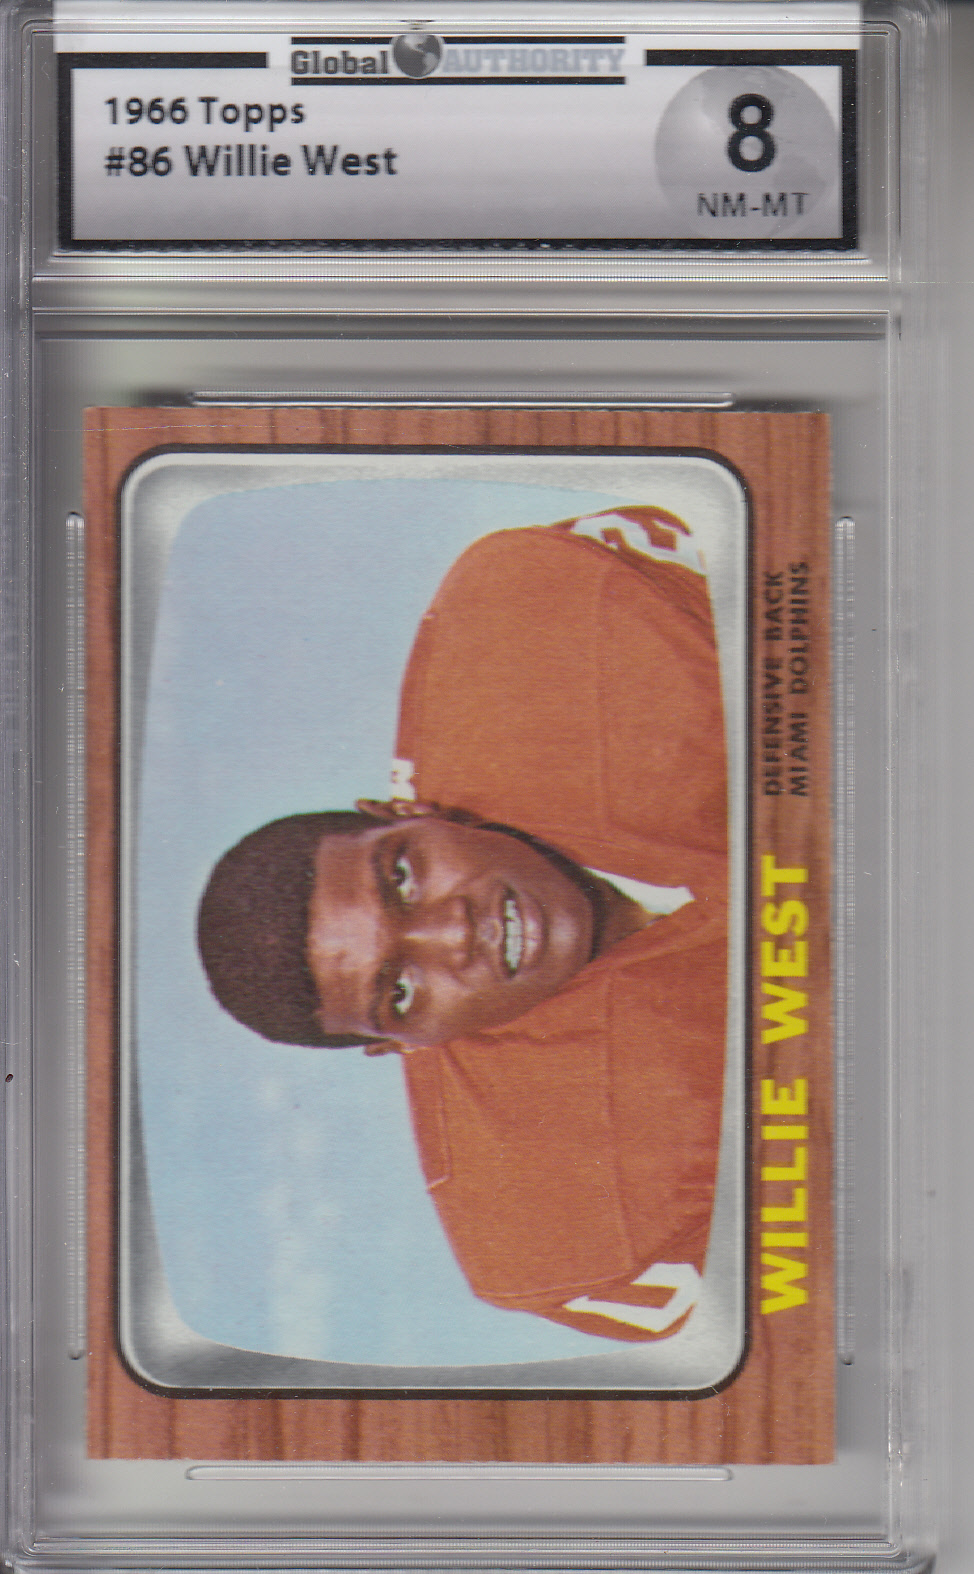 1966 Topps #86 Willie West DOLPHINS GAI 8 NM-MT Z20825